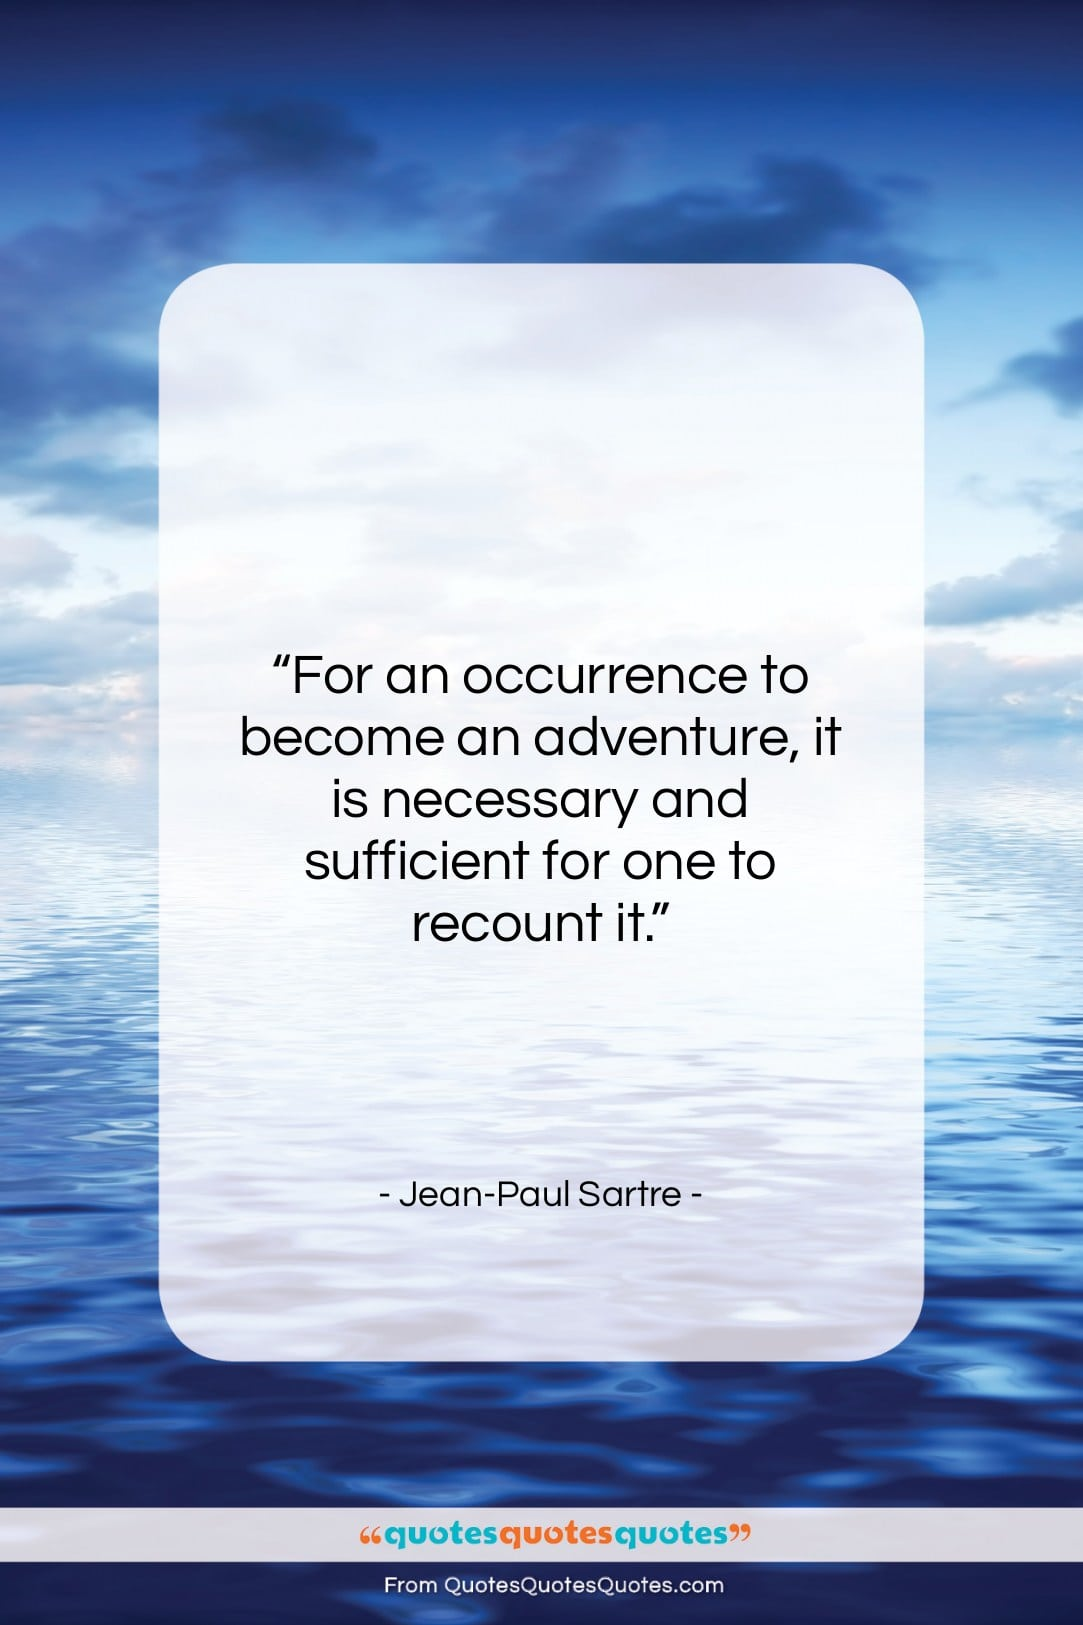 """Jean-Paul Sartre quote: """"For an occurrence to become an adventure,…""""- at QuotesQuotesQuotes.com"""